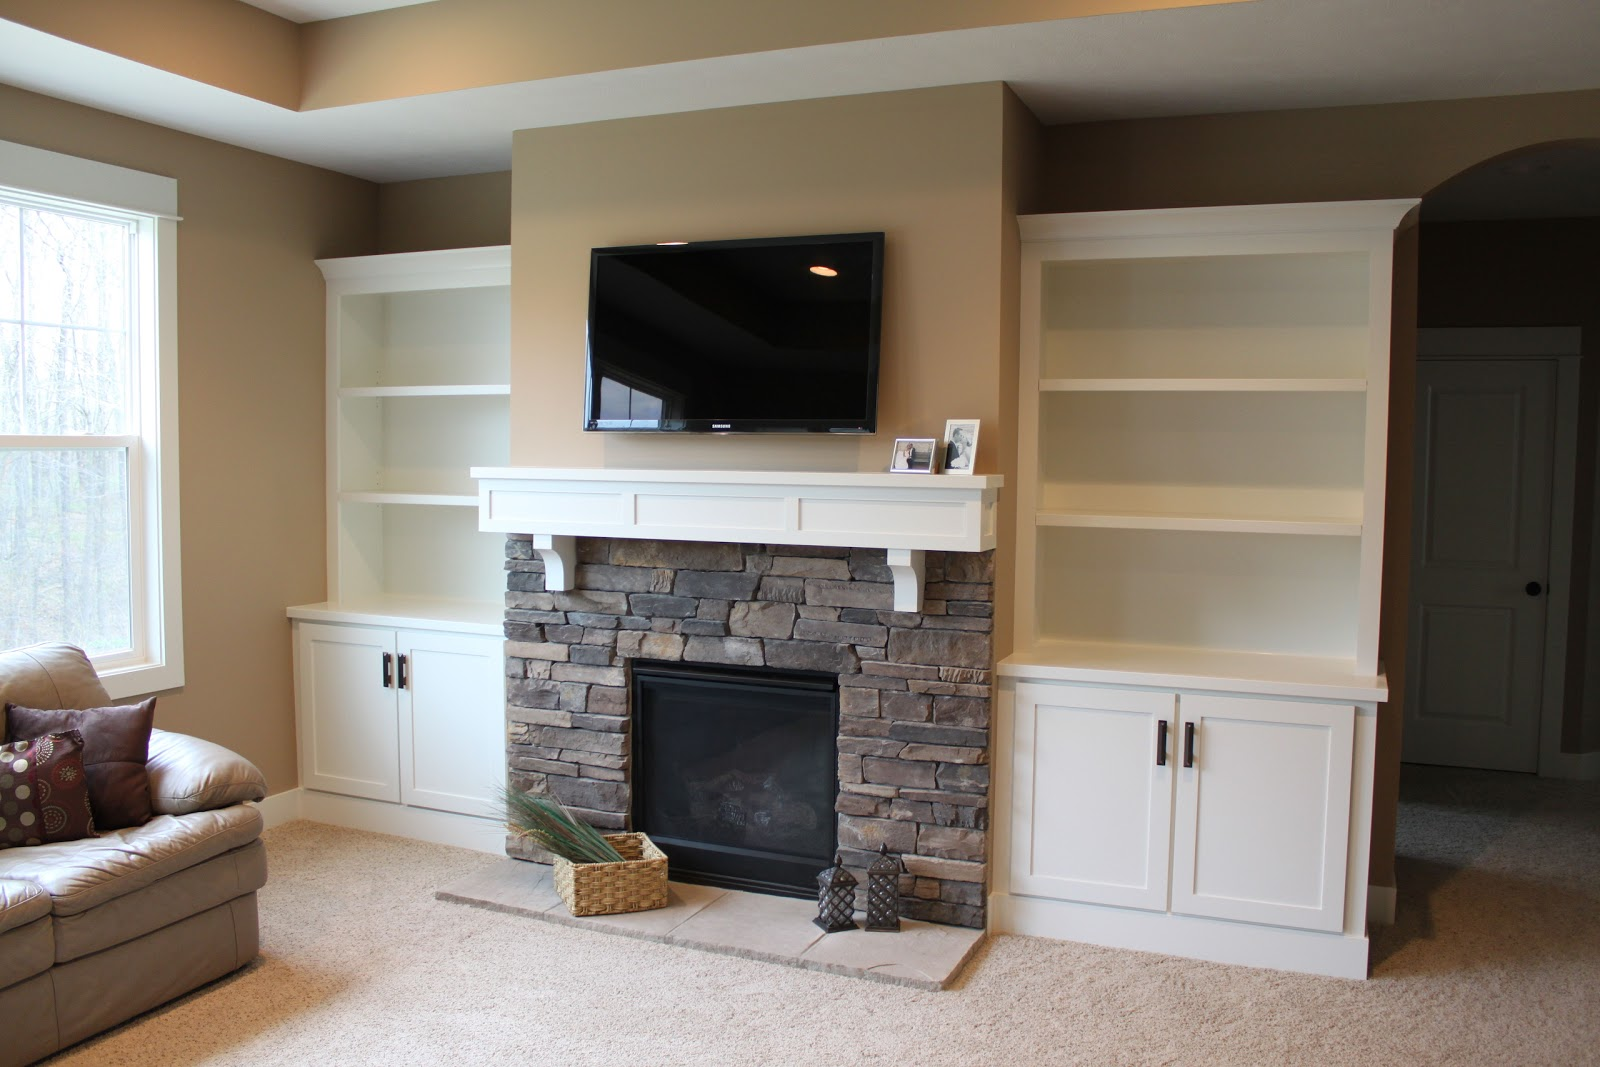 Cost of building a fireplace - Hammers And High Heels Feature Project Holly And Brian S Fireplace Built Ins